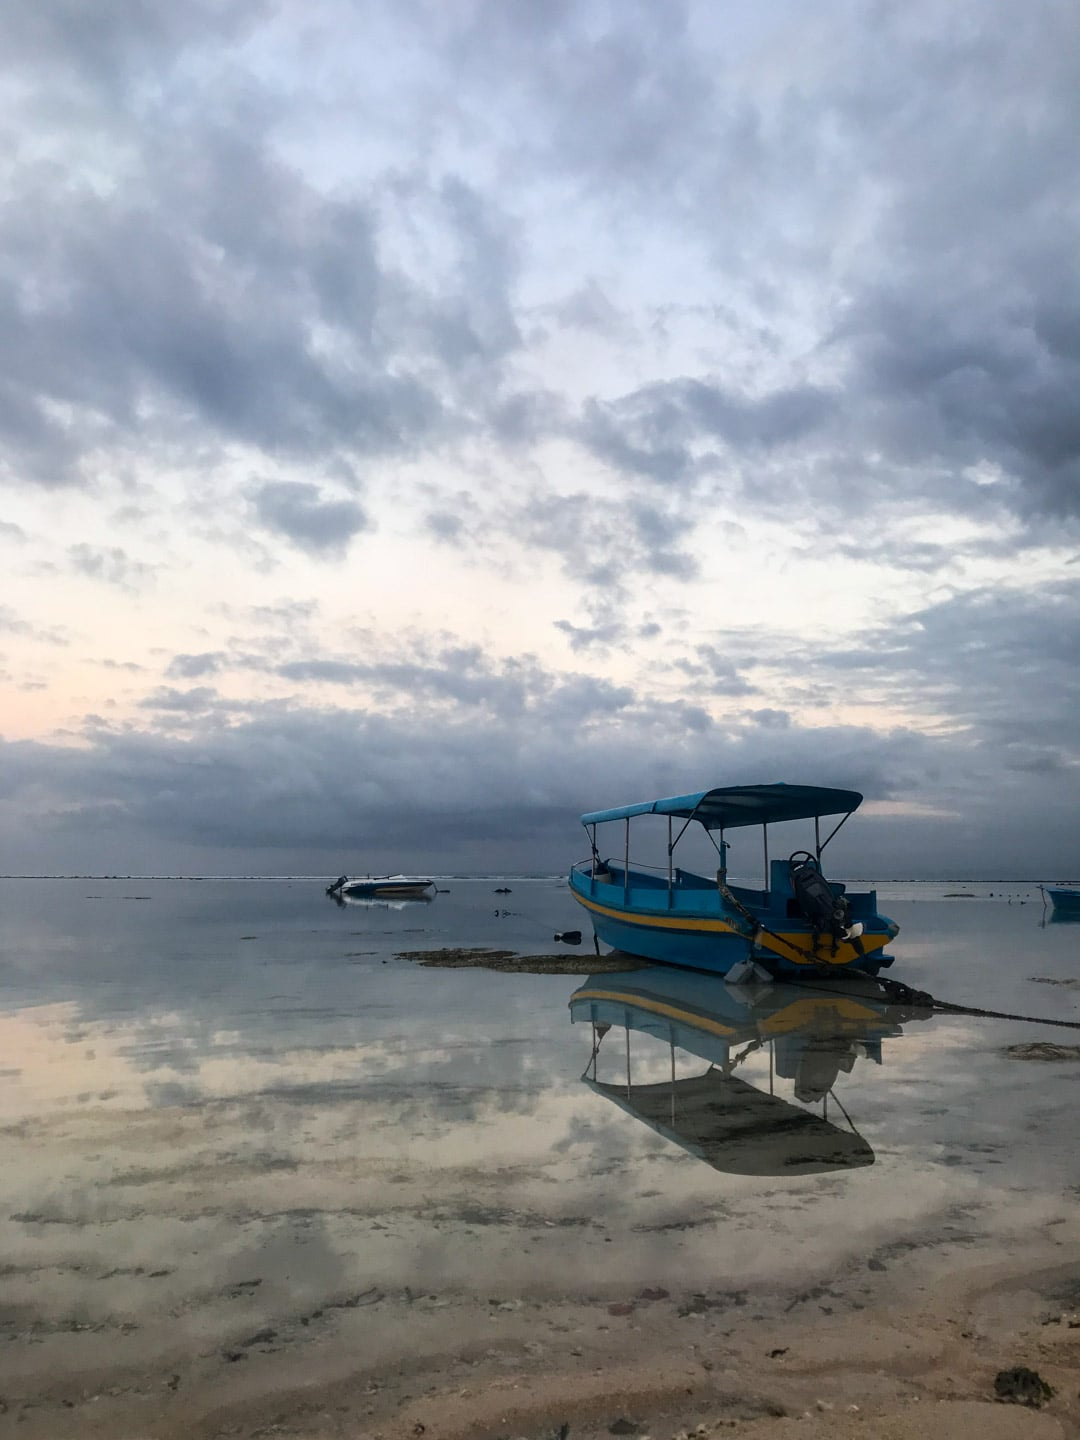 Still water reflects the sky and boat in Lembongan